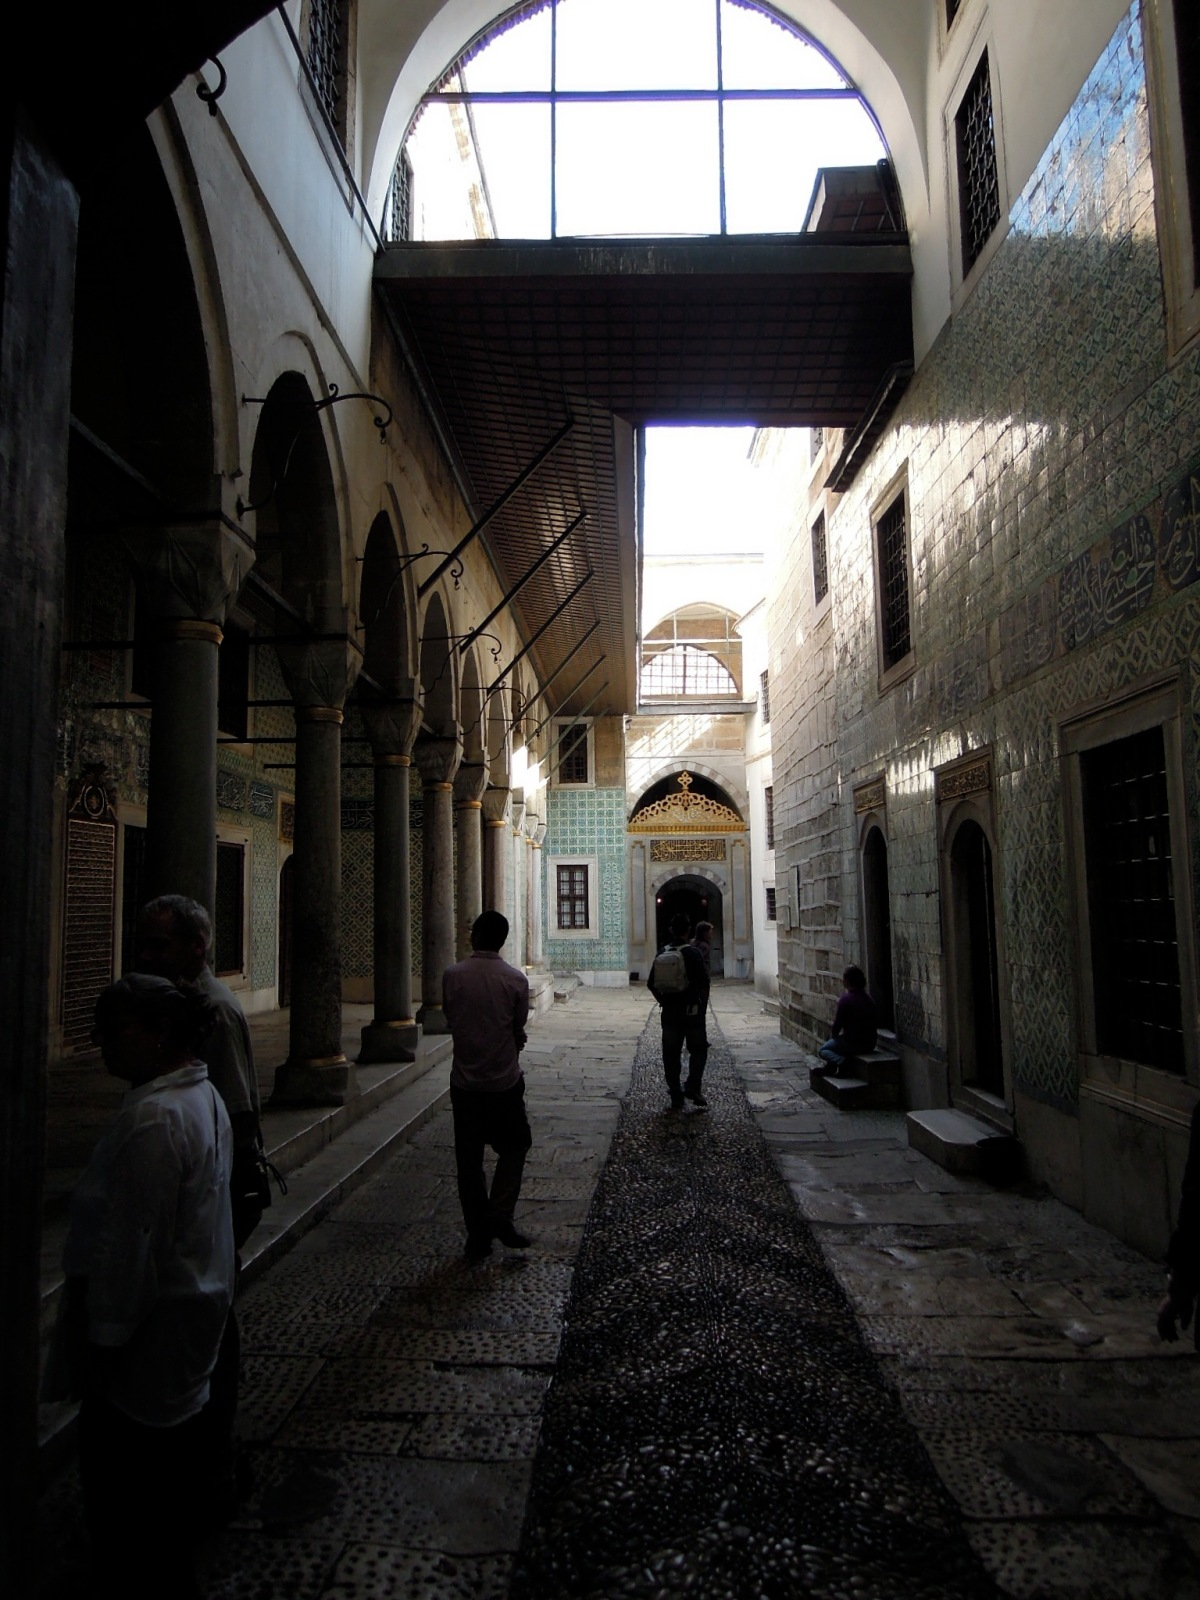 Entrance to the harem